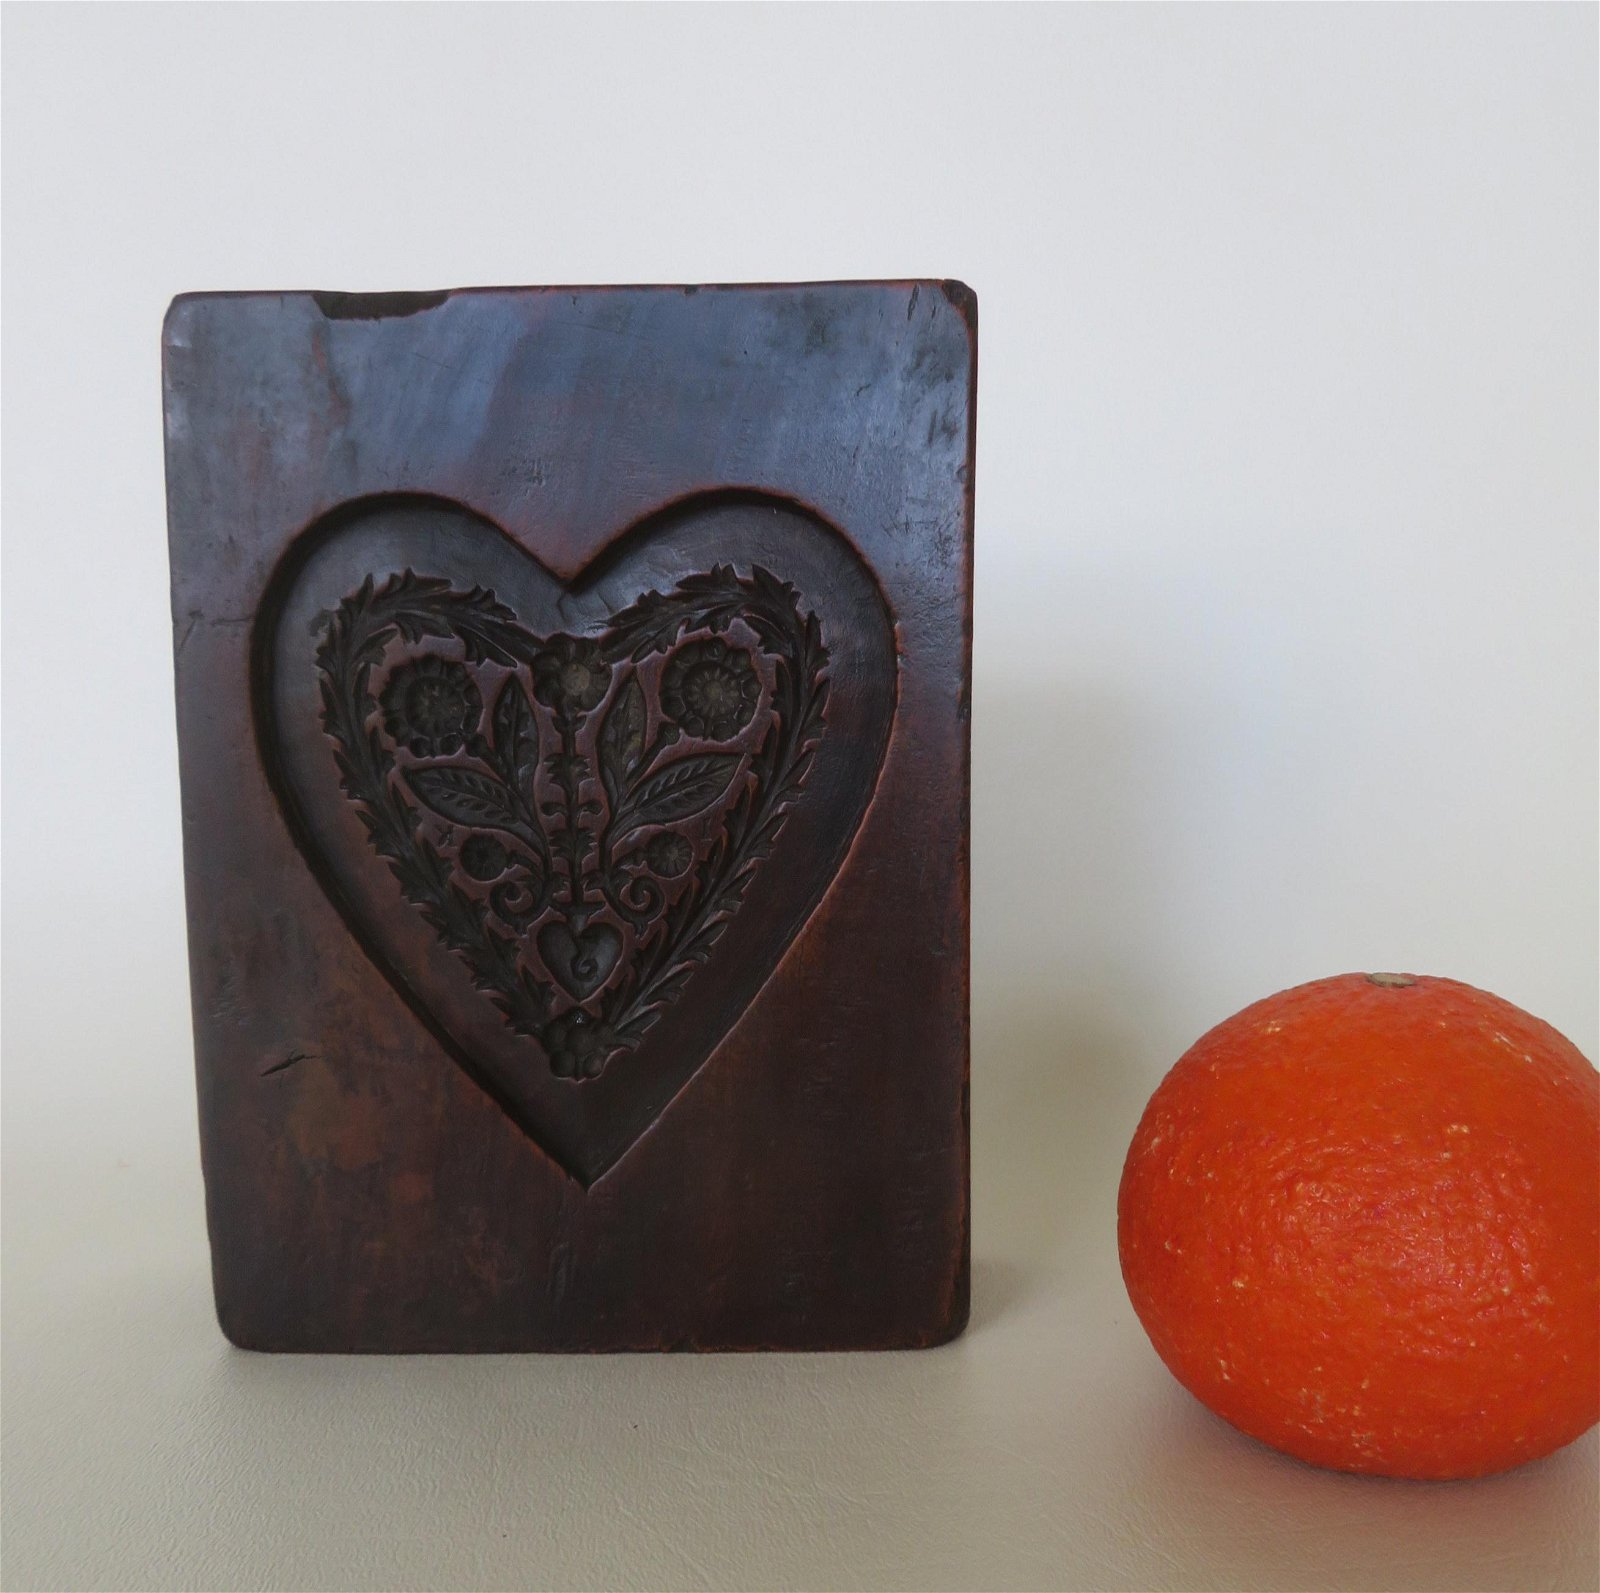 An early mahogany carved cookie mold in the shape of a